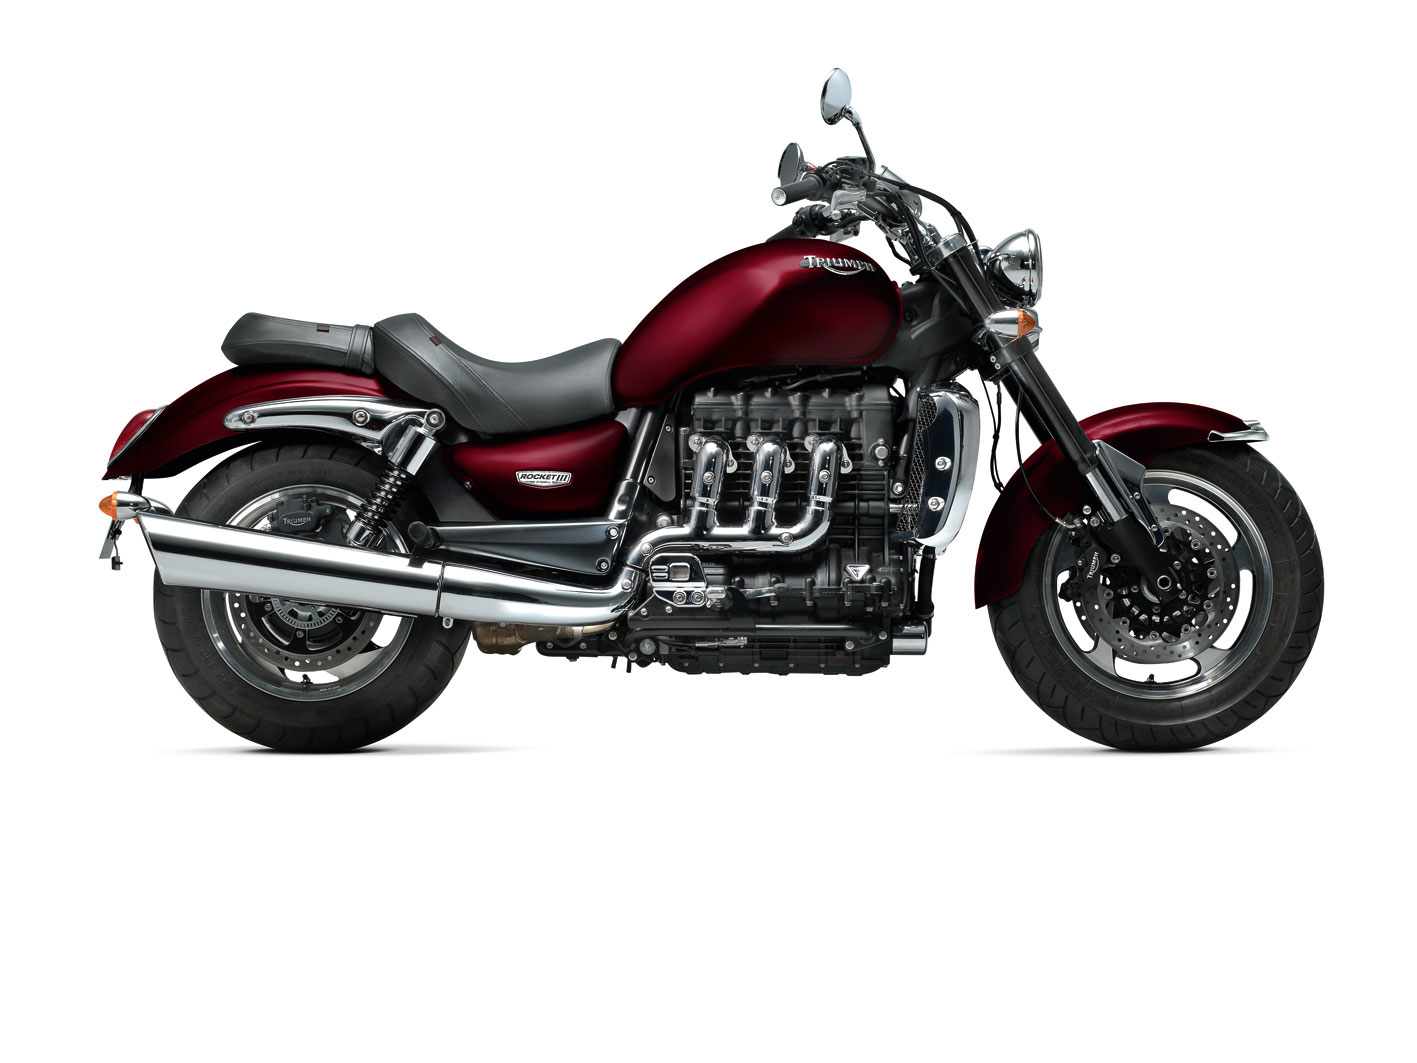 triumph rocket iii motorcycle - photo #4